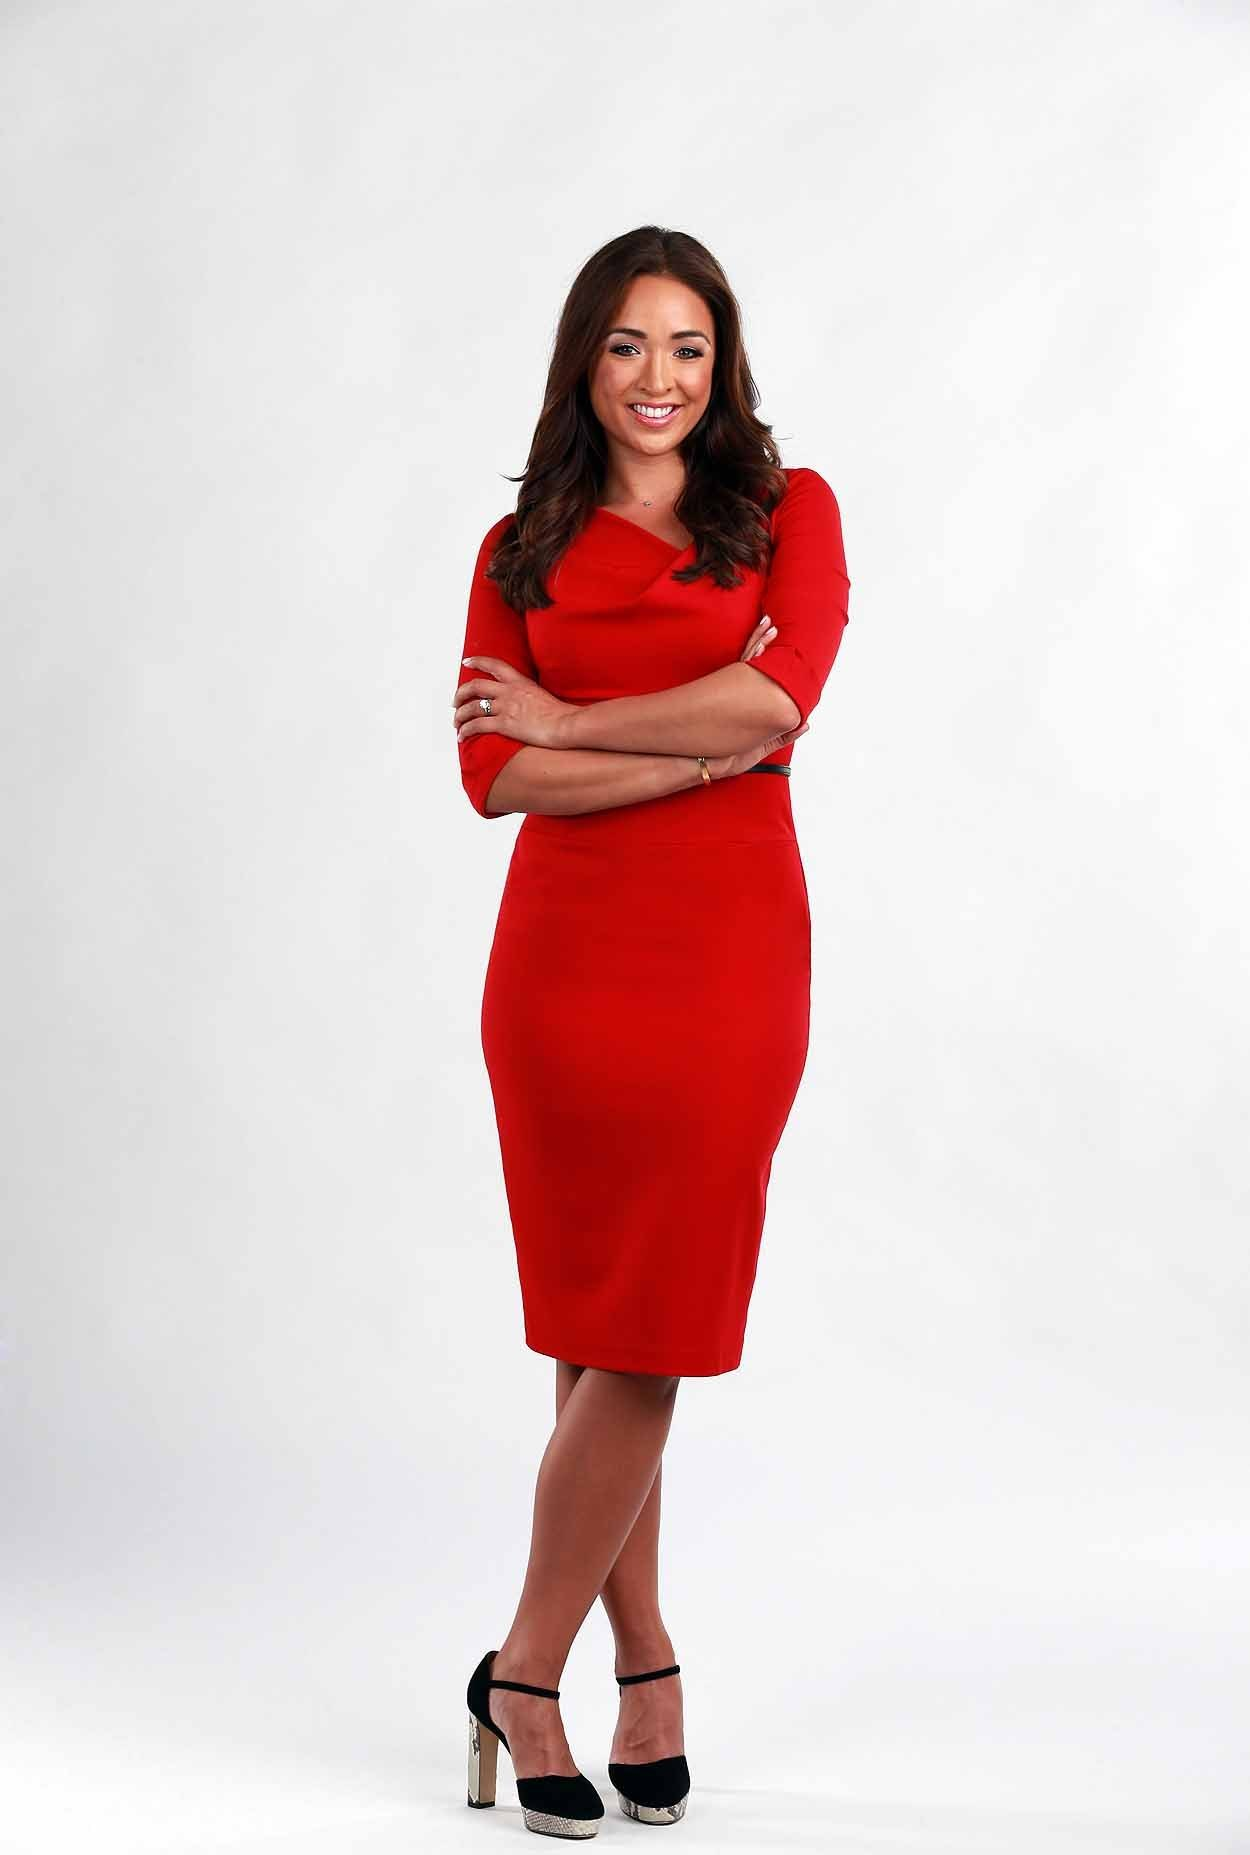 Evanston's Cassidy Hubbarth generating buzz as ESPN host